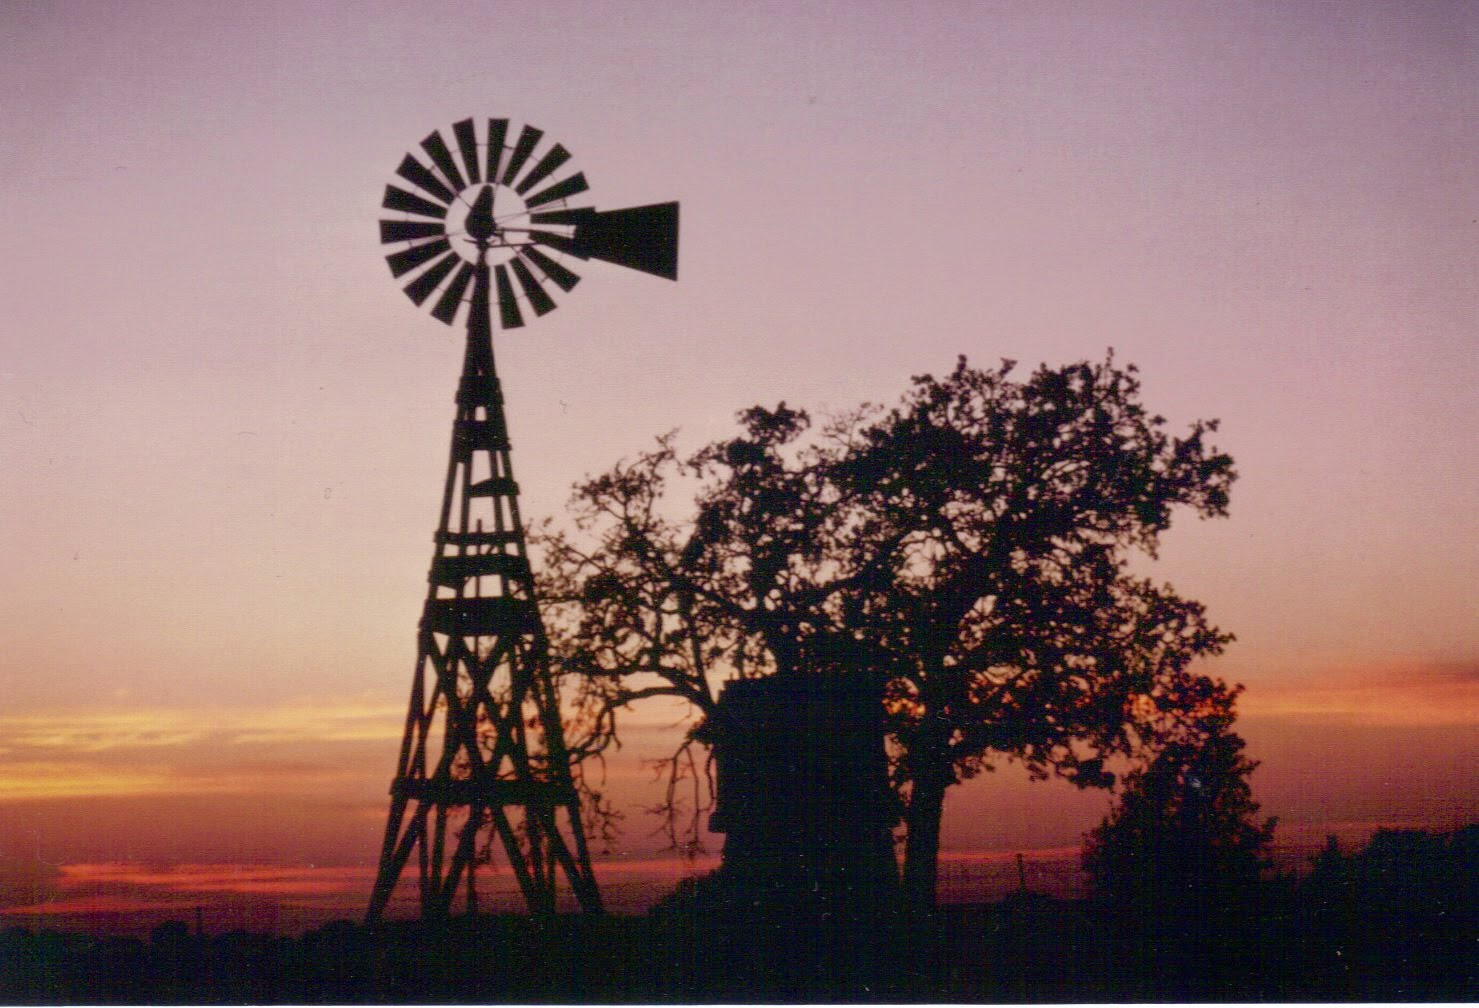 LOVE SUNSETS AND WINDMILLS!